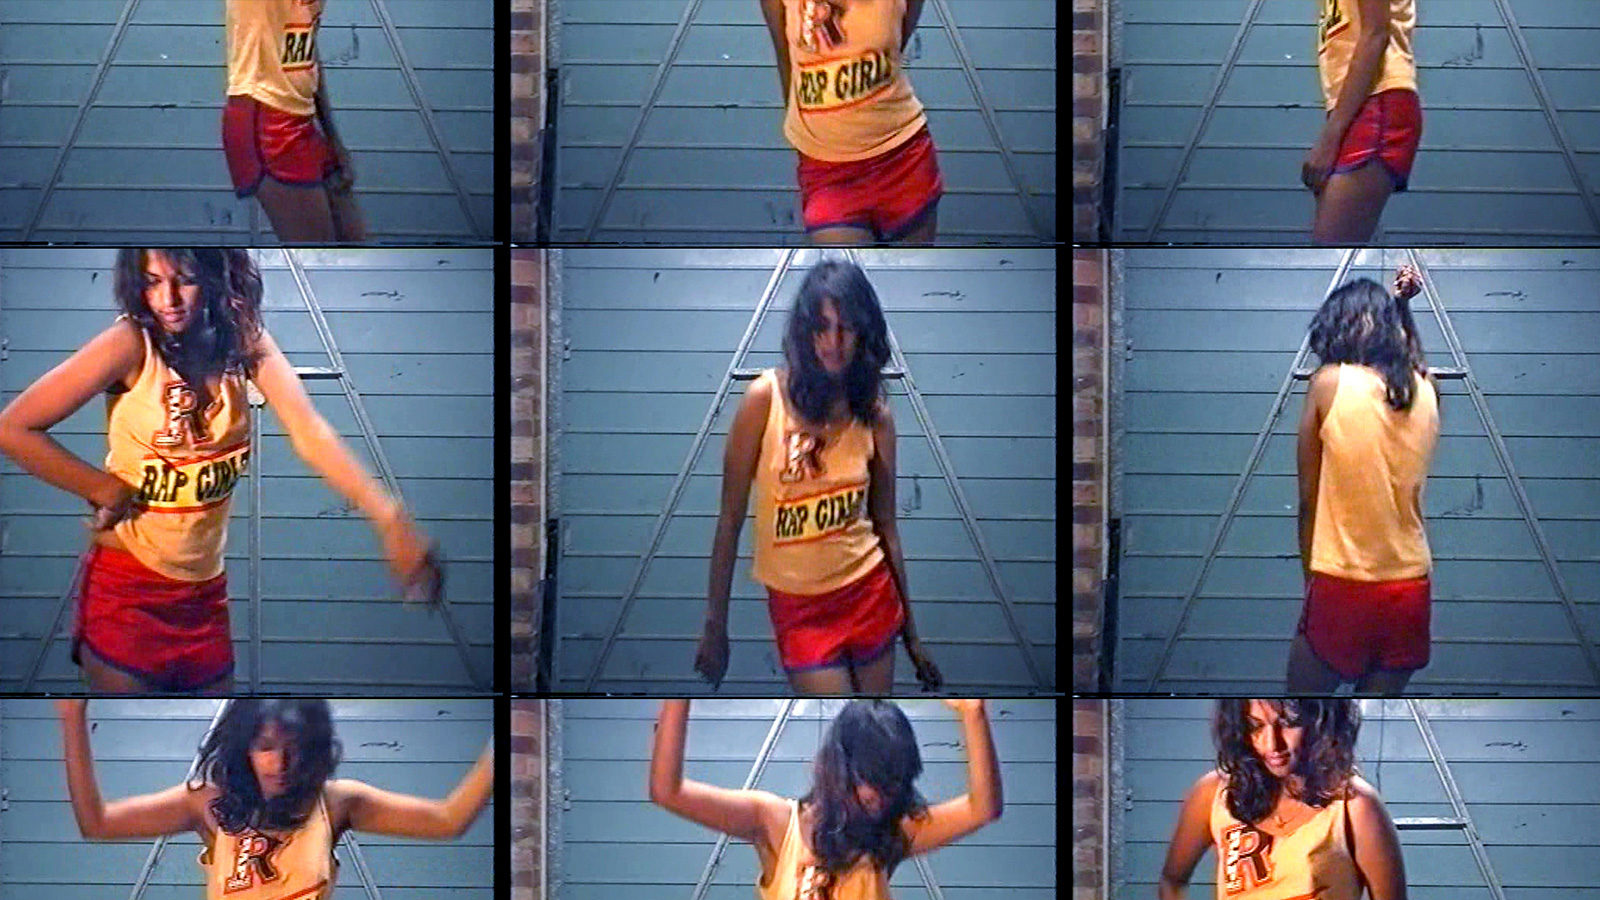 Matangi/Maya/M.I.A. , Stephen Loveridge (2018)